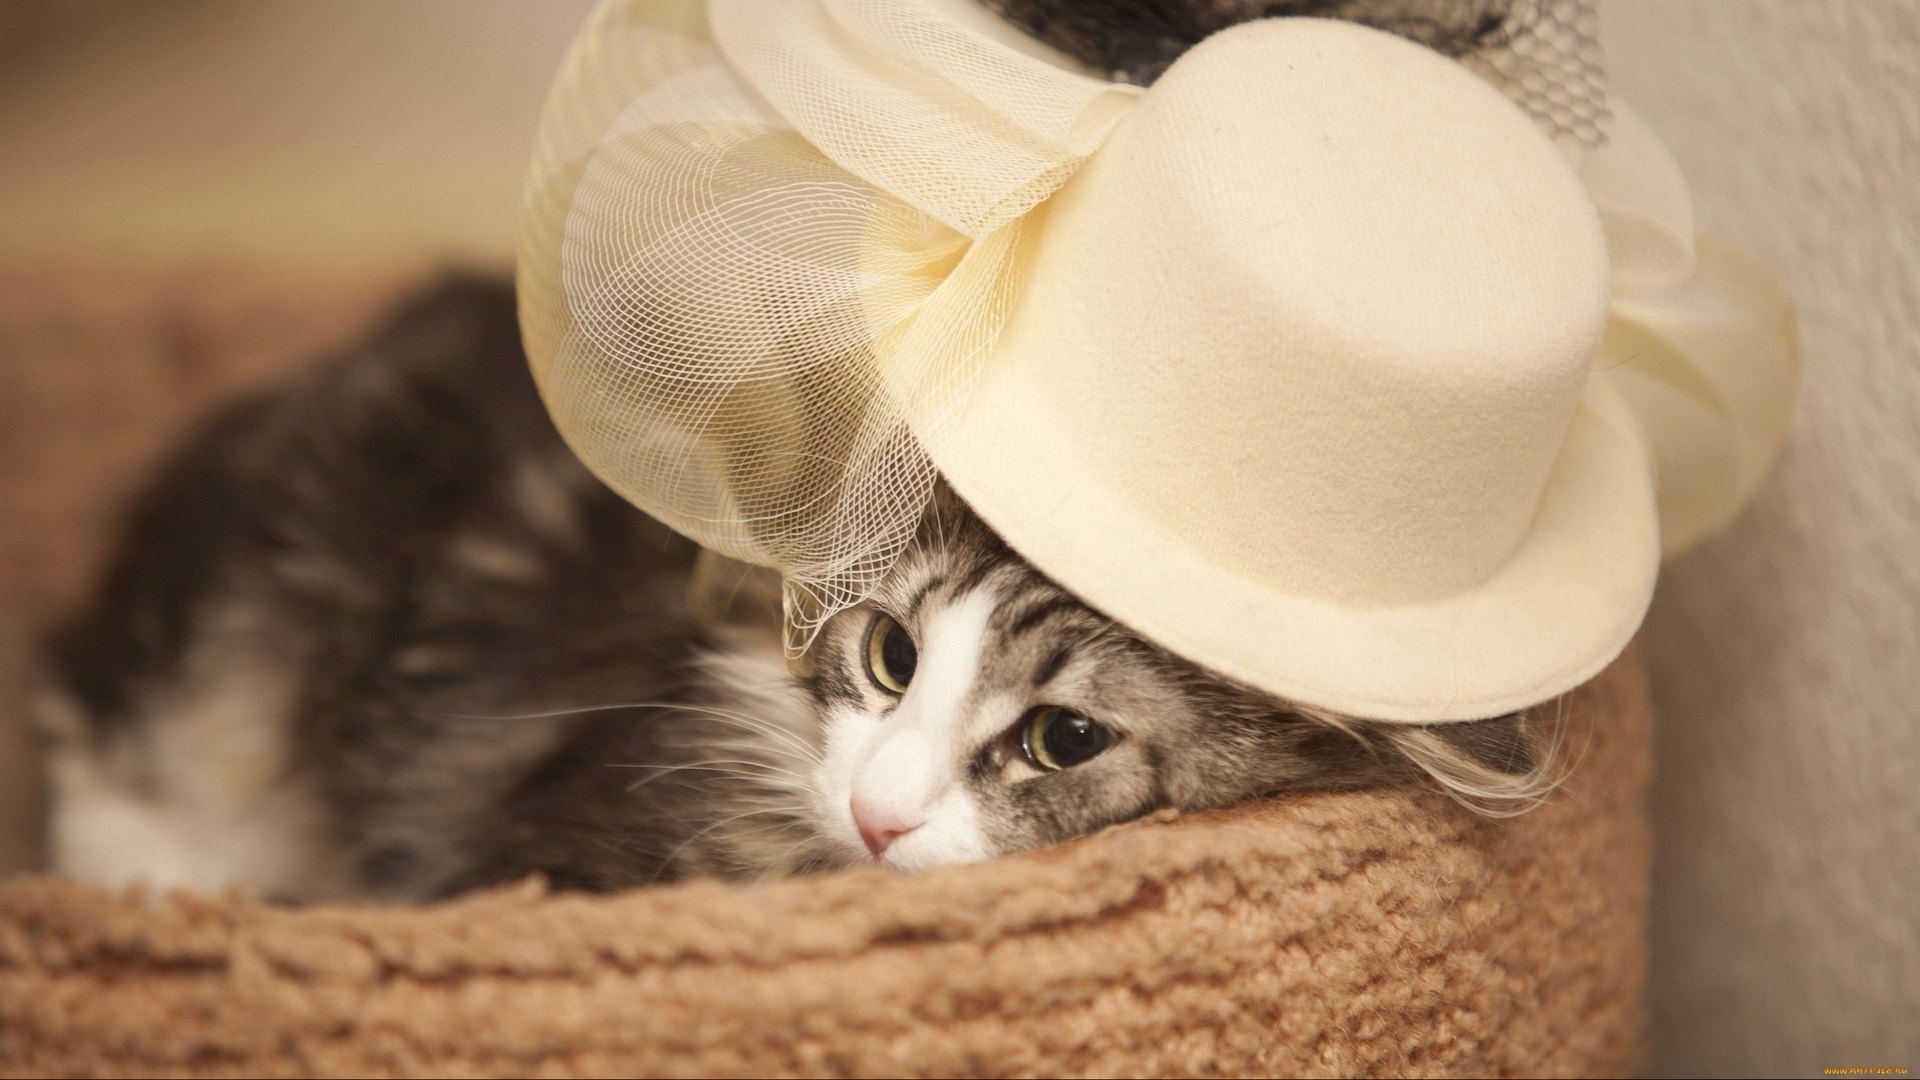 cute cat photos hd for mobile 2